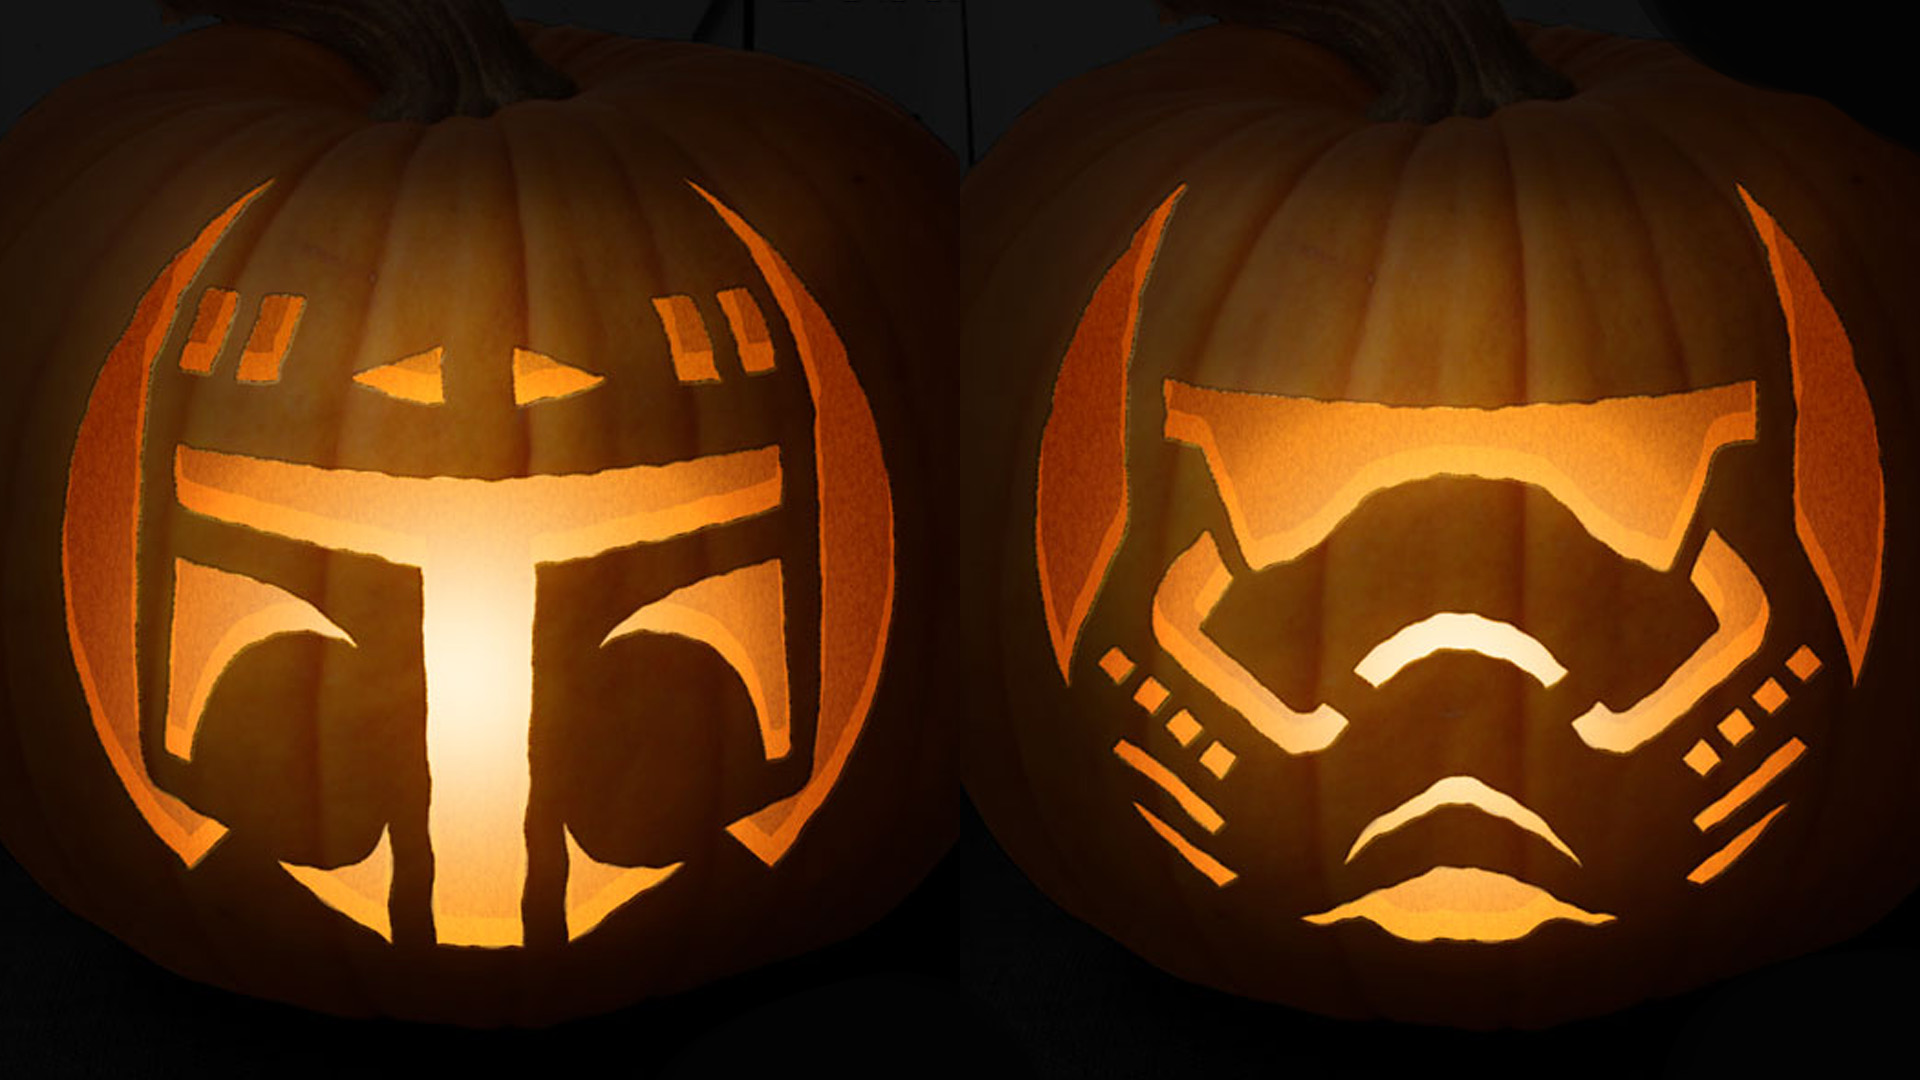 Star wars themed pumpkin carving templates will give you the looking for a good idea for carving your jack olantern for halloween this year artist anthony herrera sent us a link to some pumpkin carving templates he maxwellsz